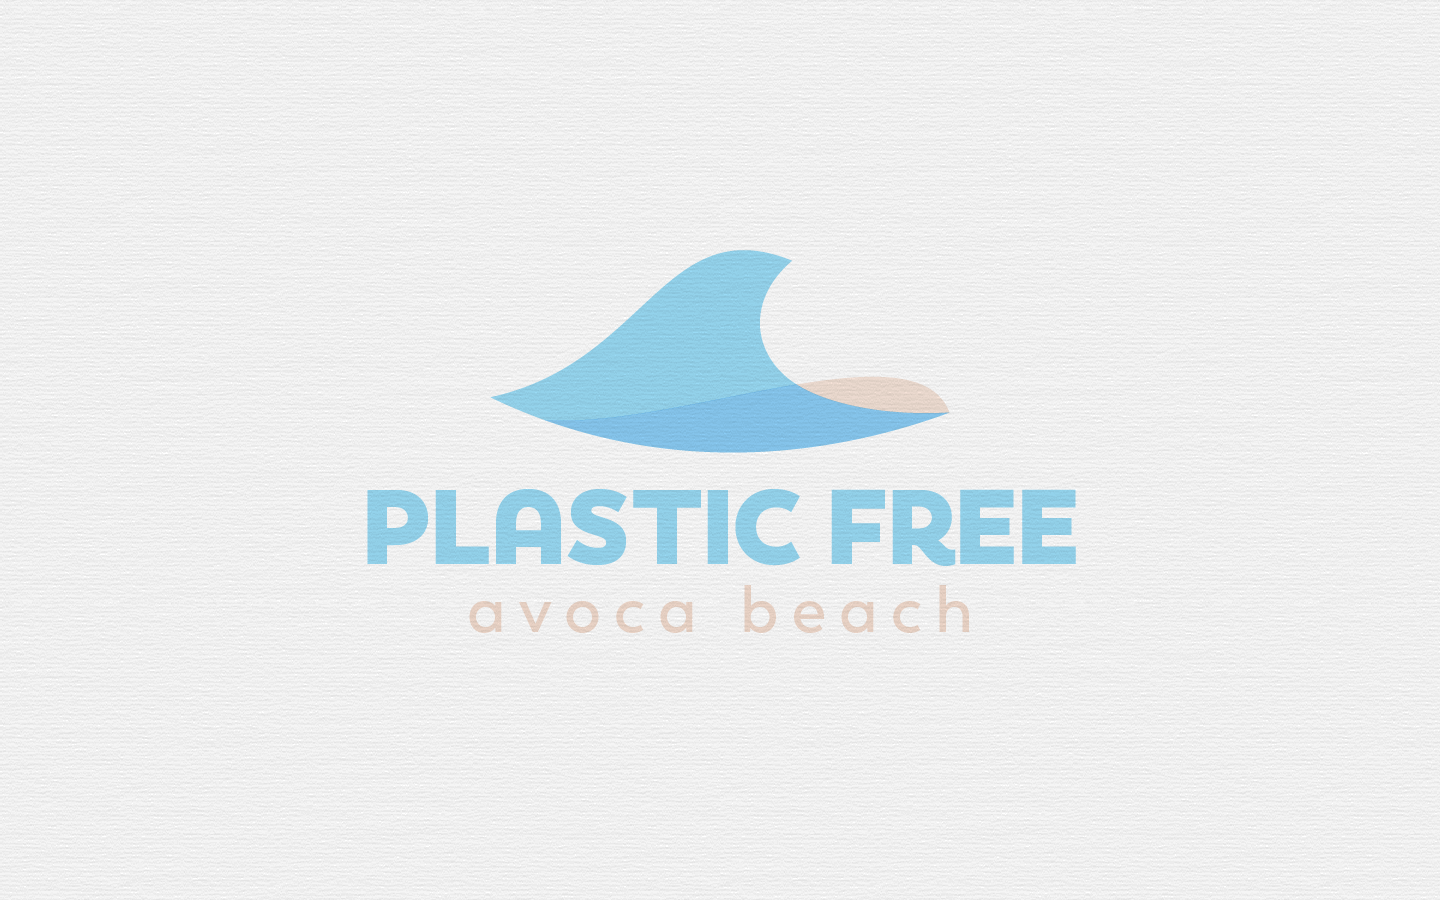 Plastic Free Avoca Beach Logo on Paper - 2020